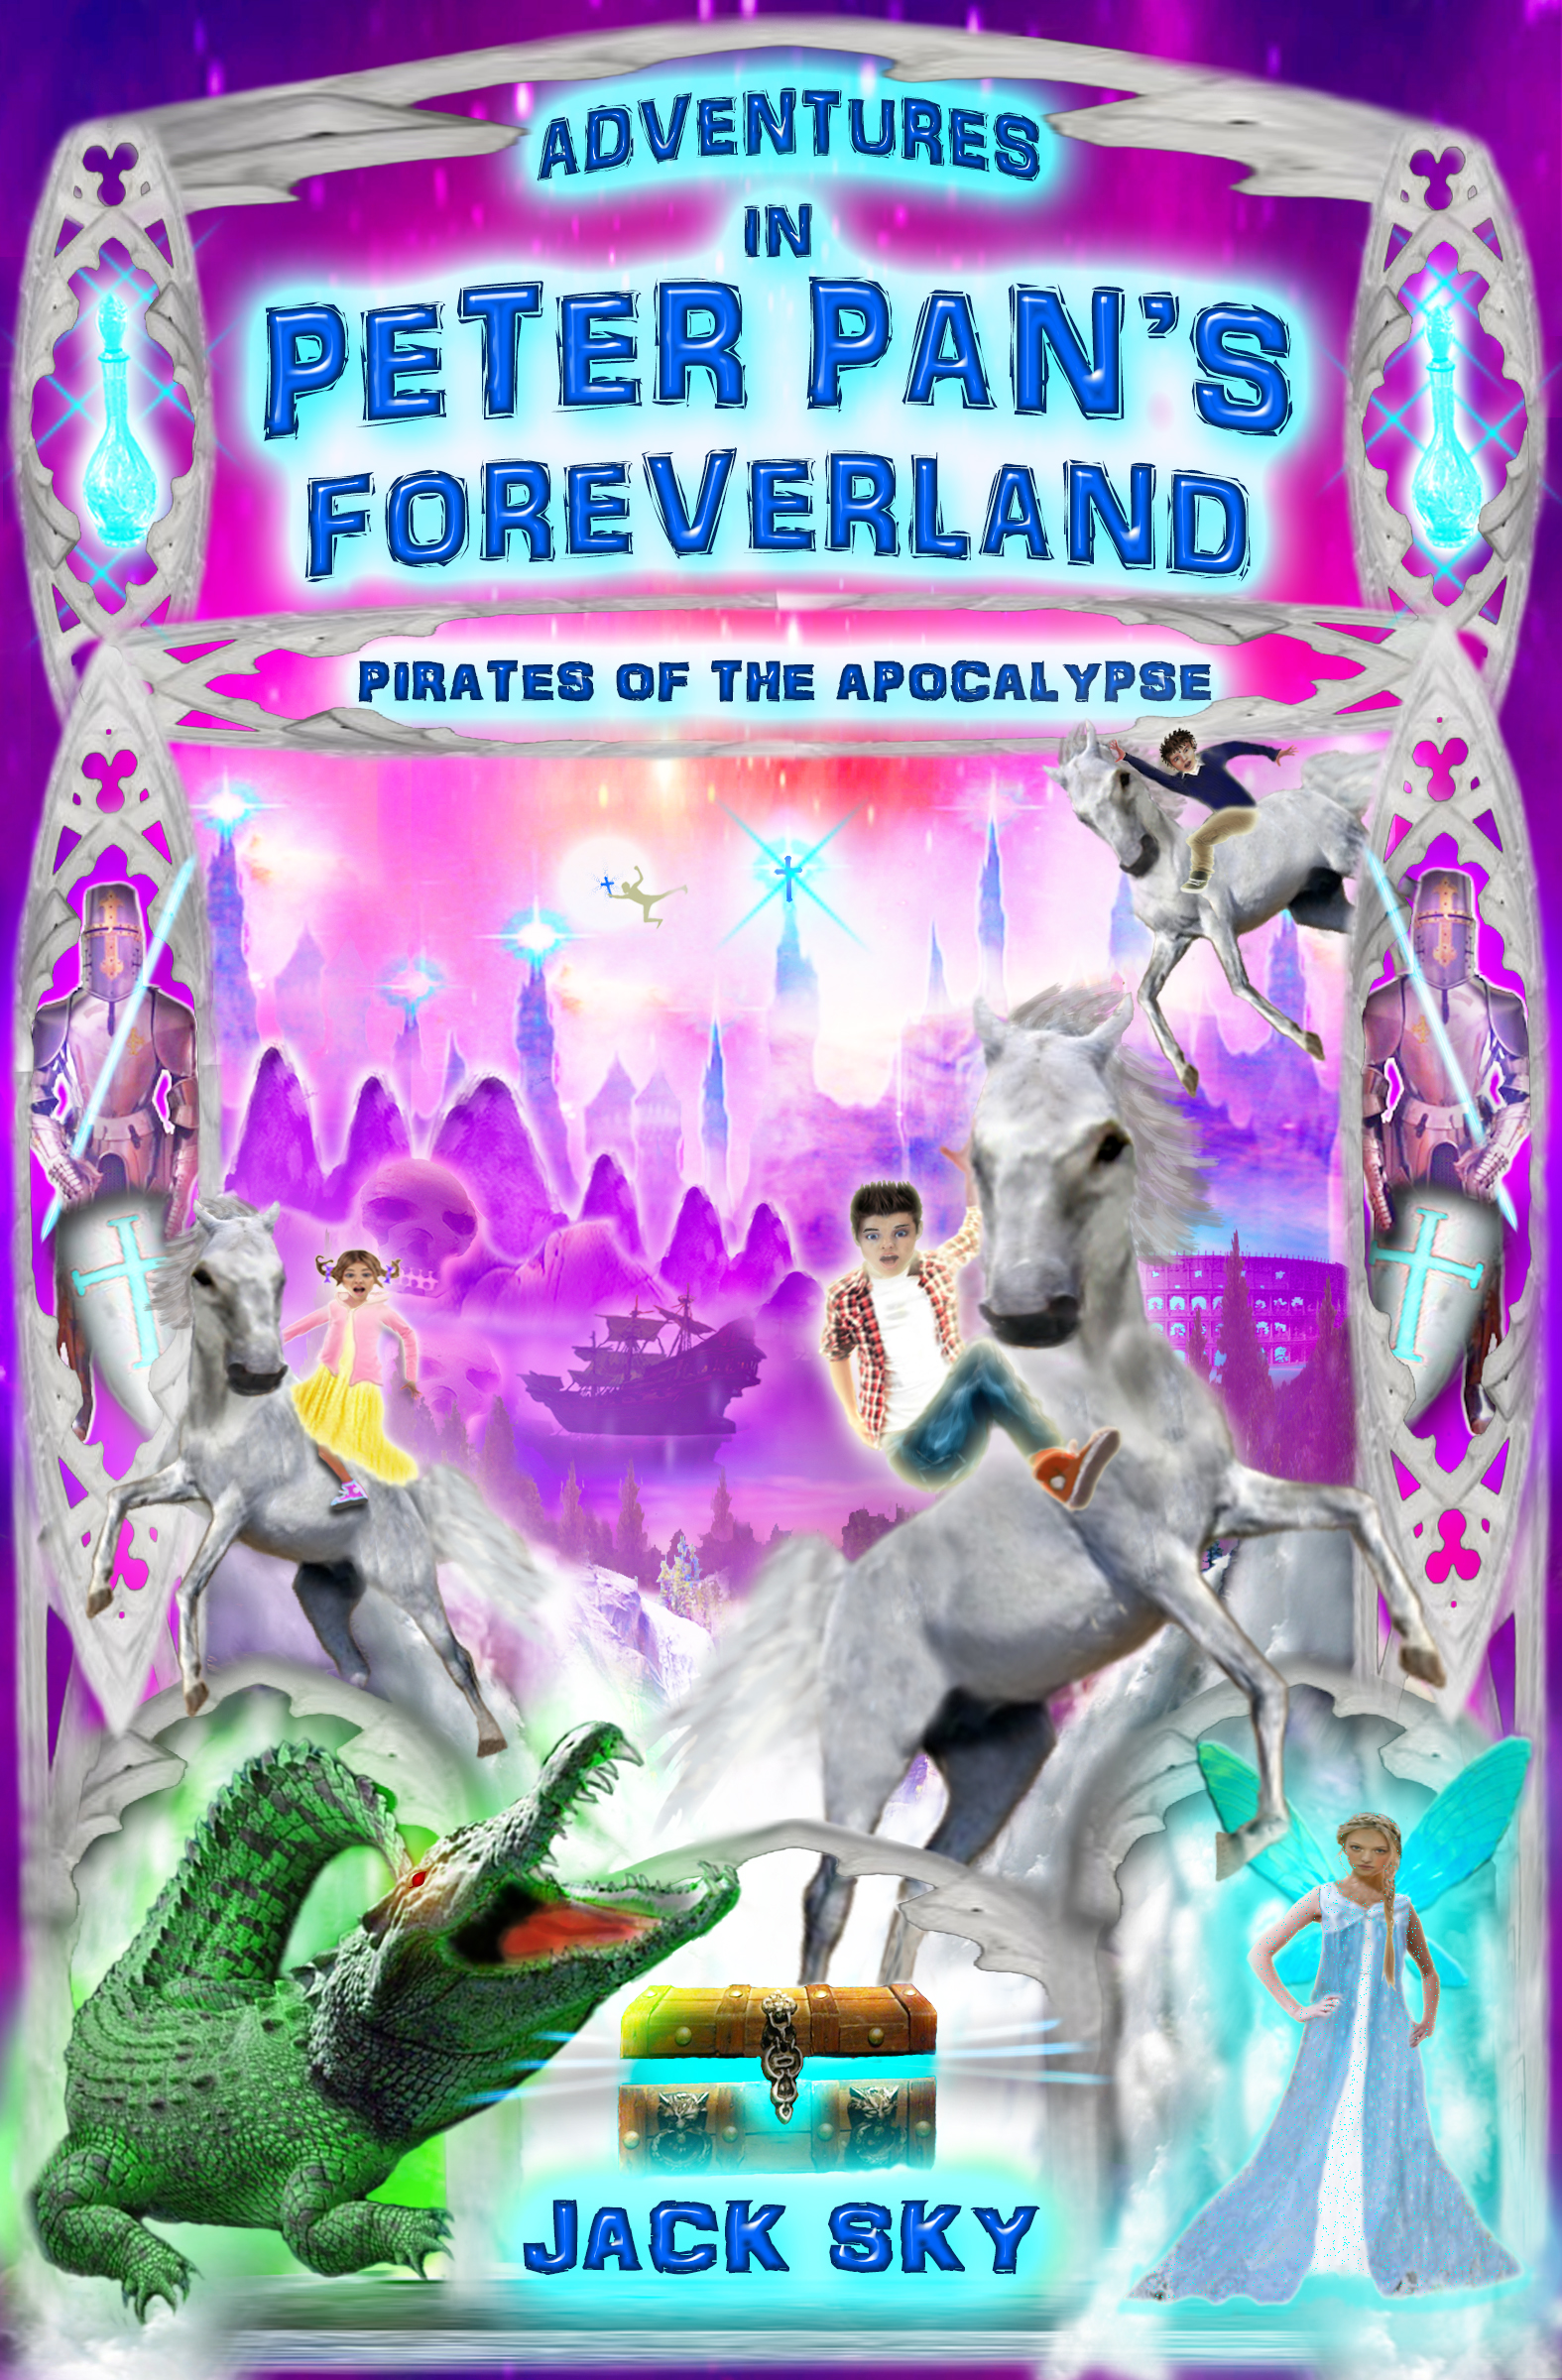 Adventures in Peter Pan's Foreverland - Pirates of the Apocalypse